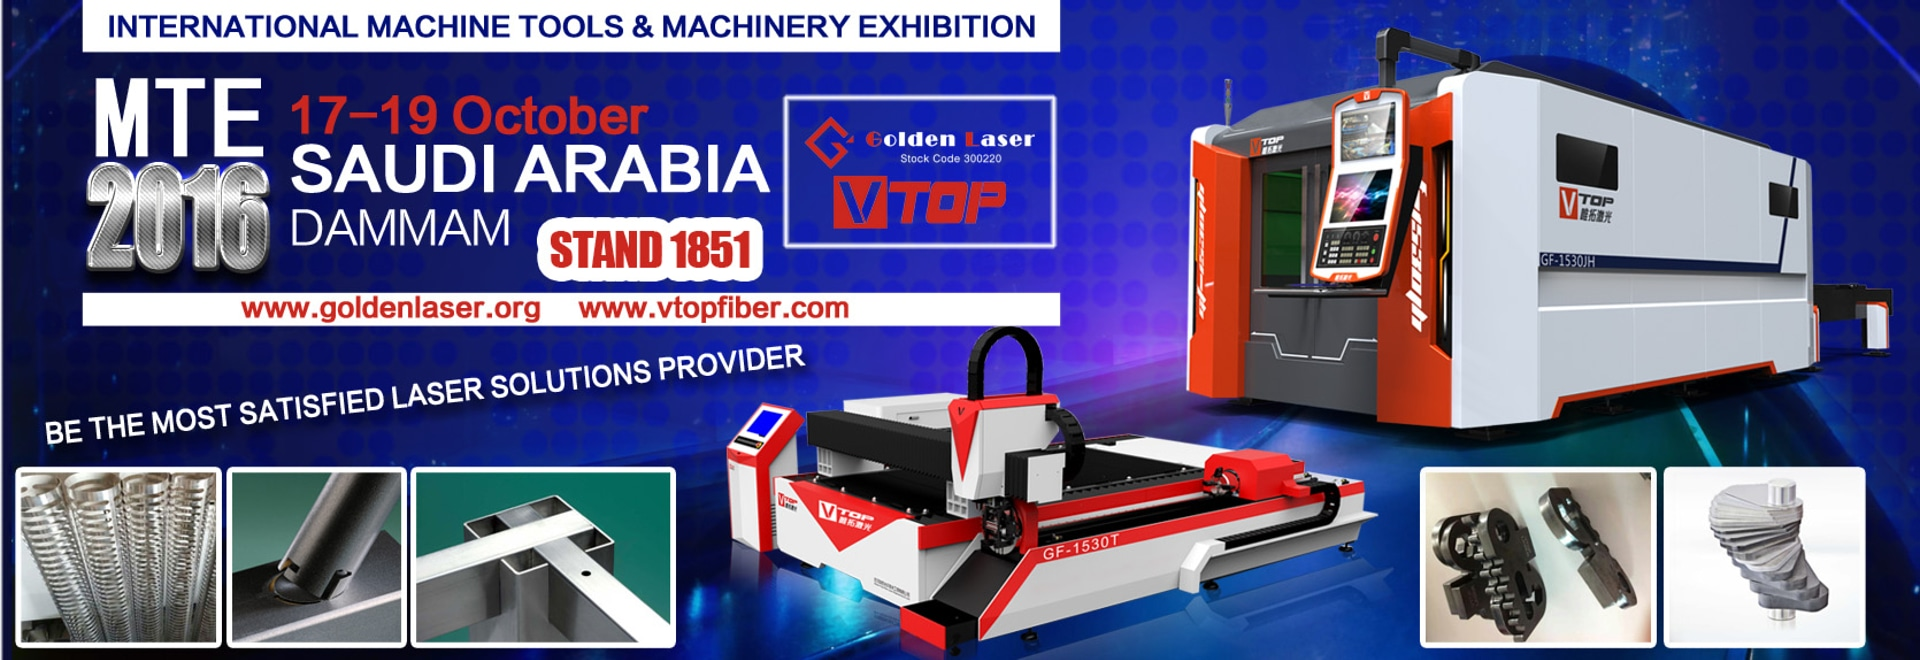 Golden Laser Will Attend The Machine Tools Exhibition In Saudi Arabia